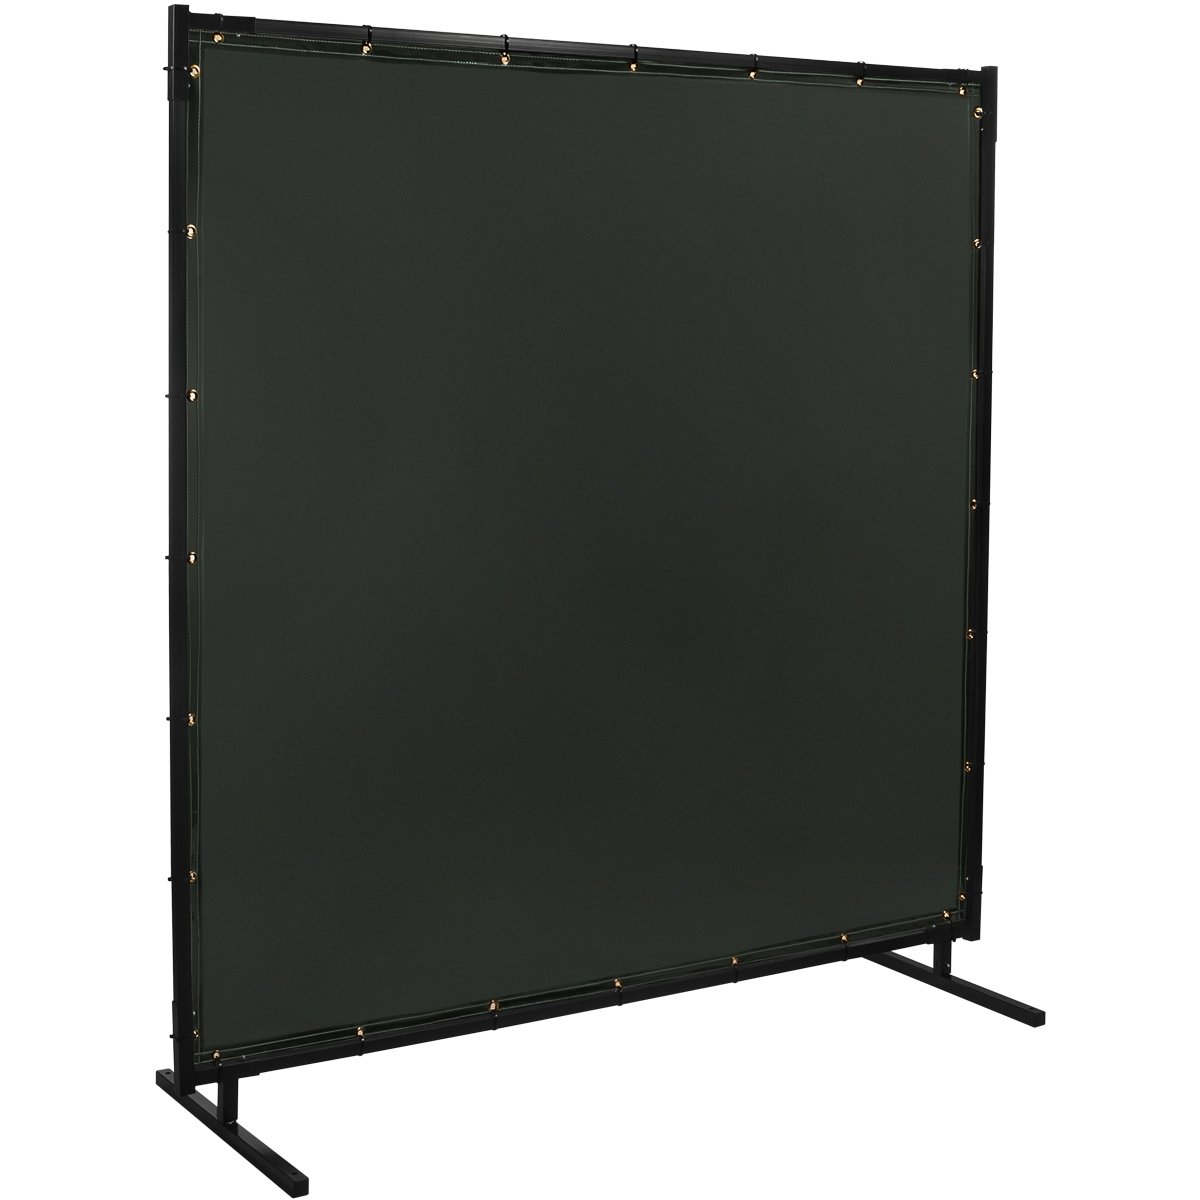 Steiner 522HD-6X10 Protect-O-Screen HD Welding Screen with Flame Retardant 14 Mil Tinted Transparent Vinyl Curtain, Shade 8, 6' x 10' 6' x 10' ERB